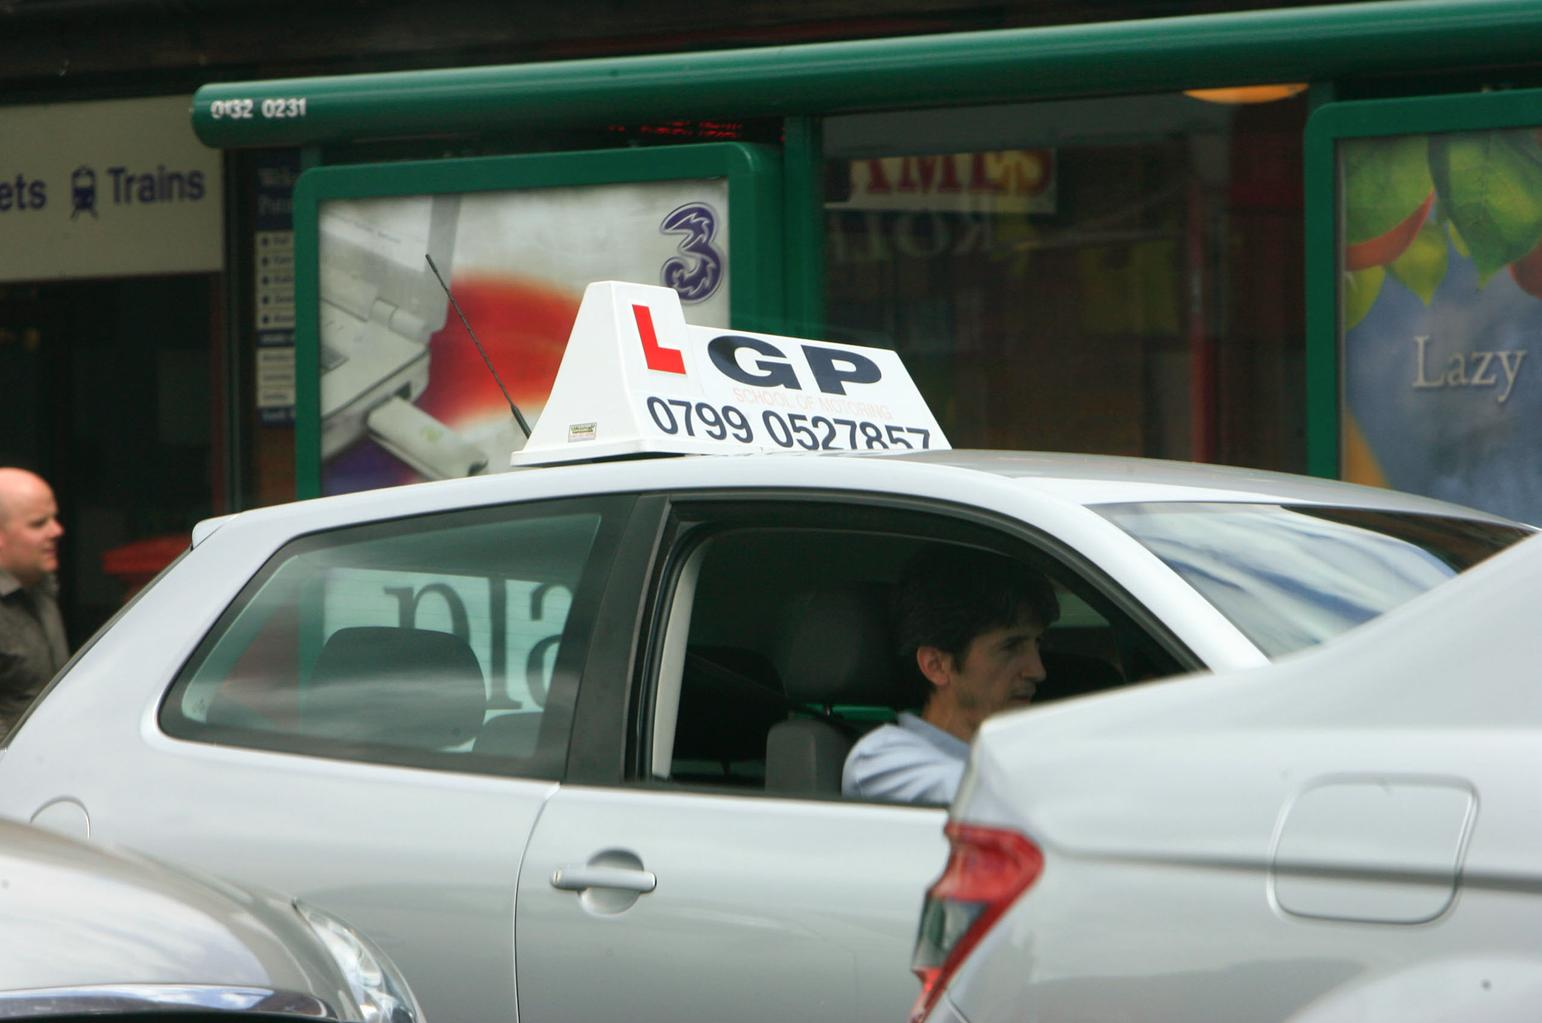 How much do driving lessons cost?